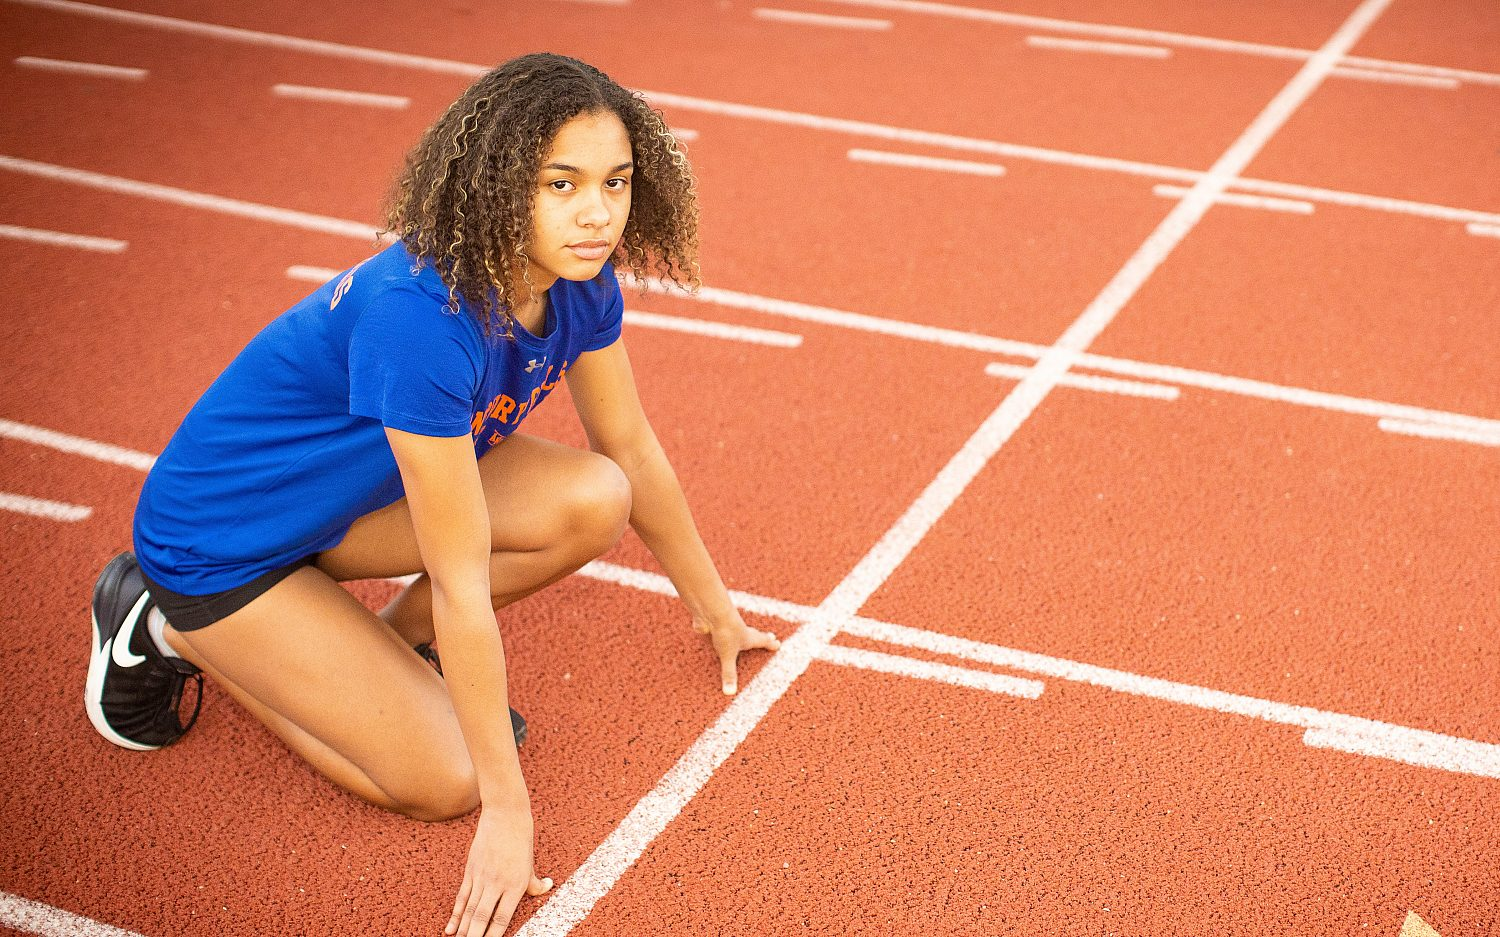 Ruling leaves female athletes unprotected